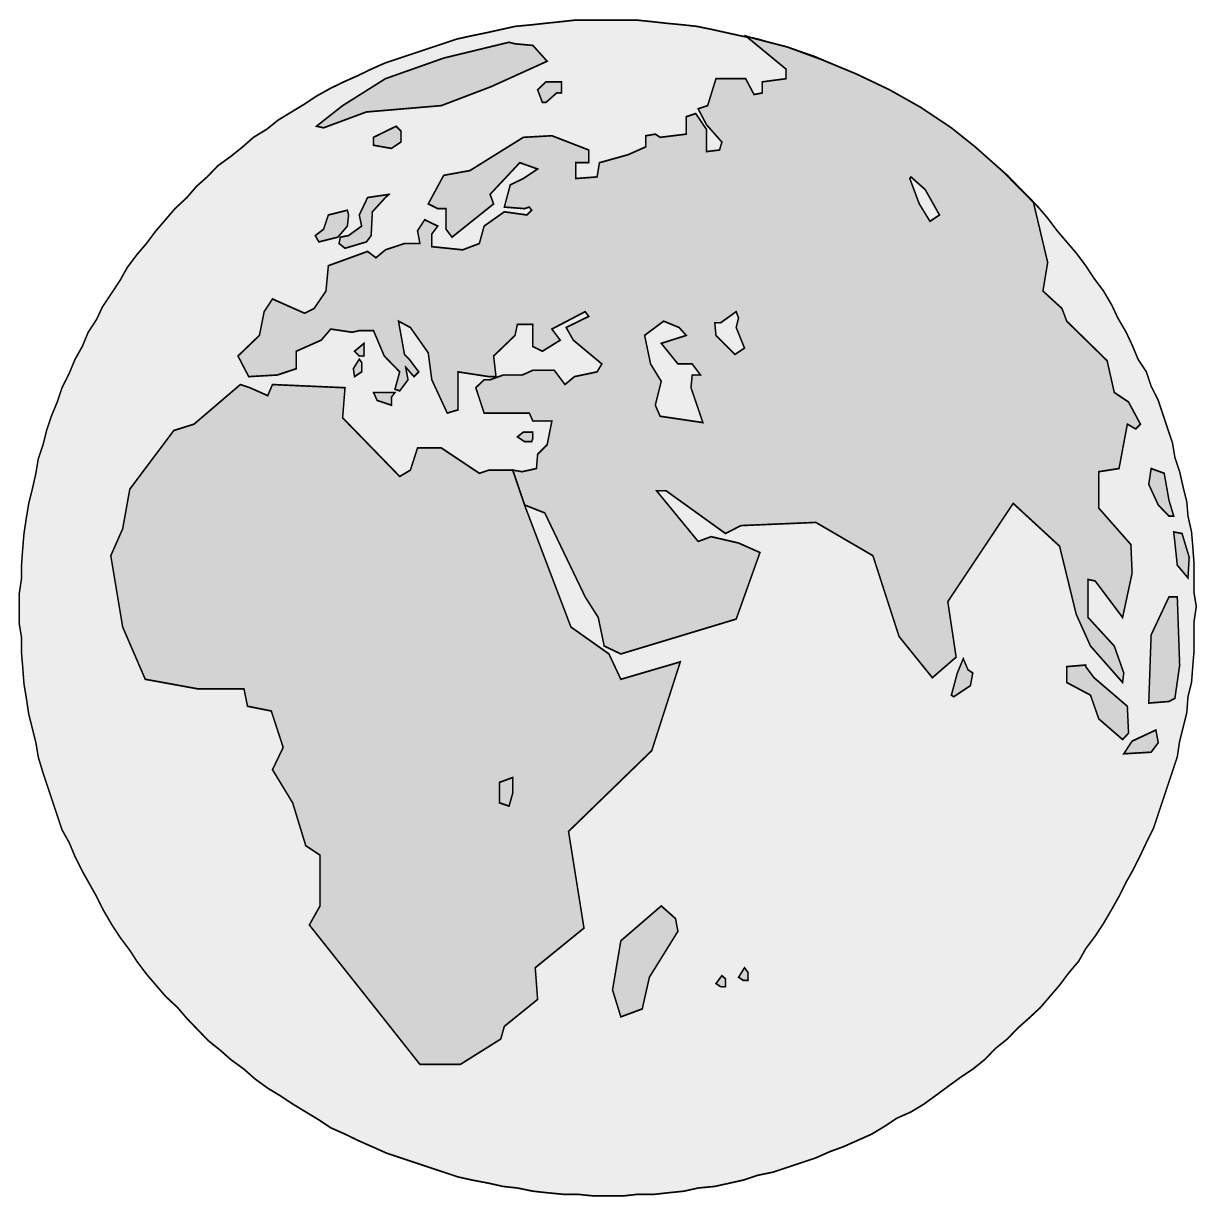 Map work large scale maps by openstax quizover have you ever tried to cut open and flatten a deflated ball that is why most world maps portray the earth as flat gumiabroncs Images